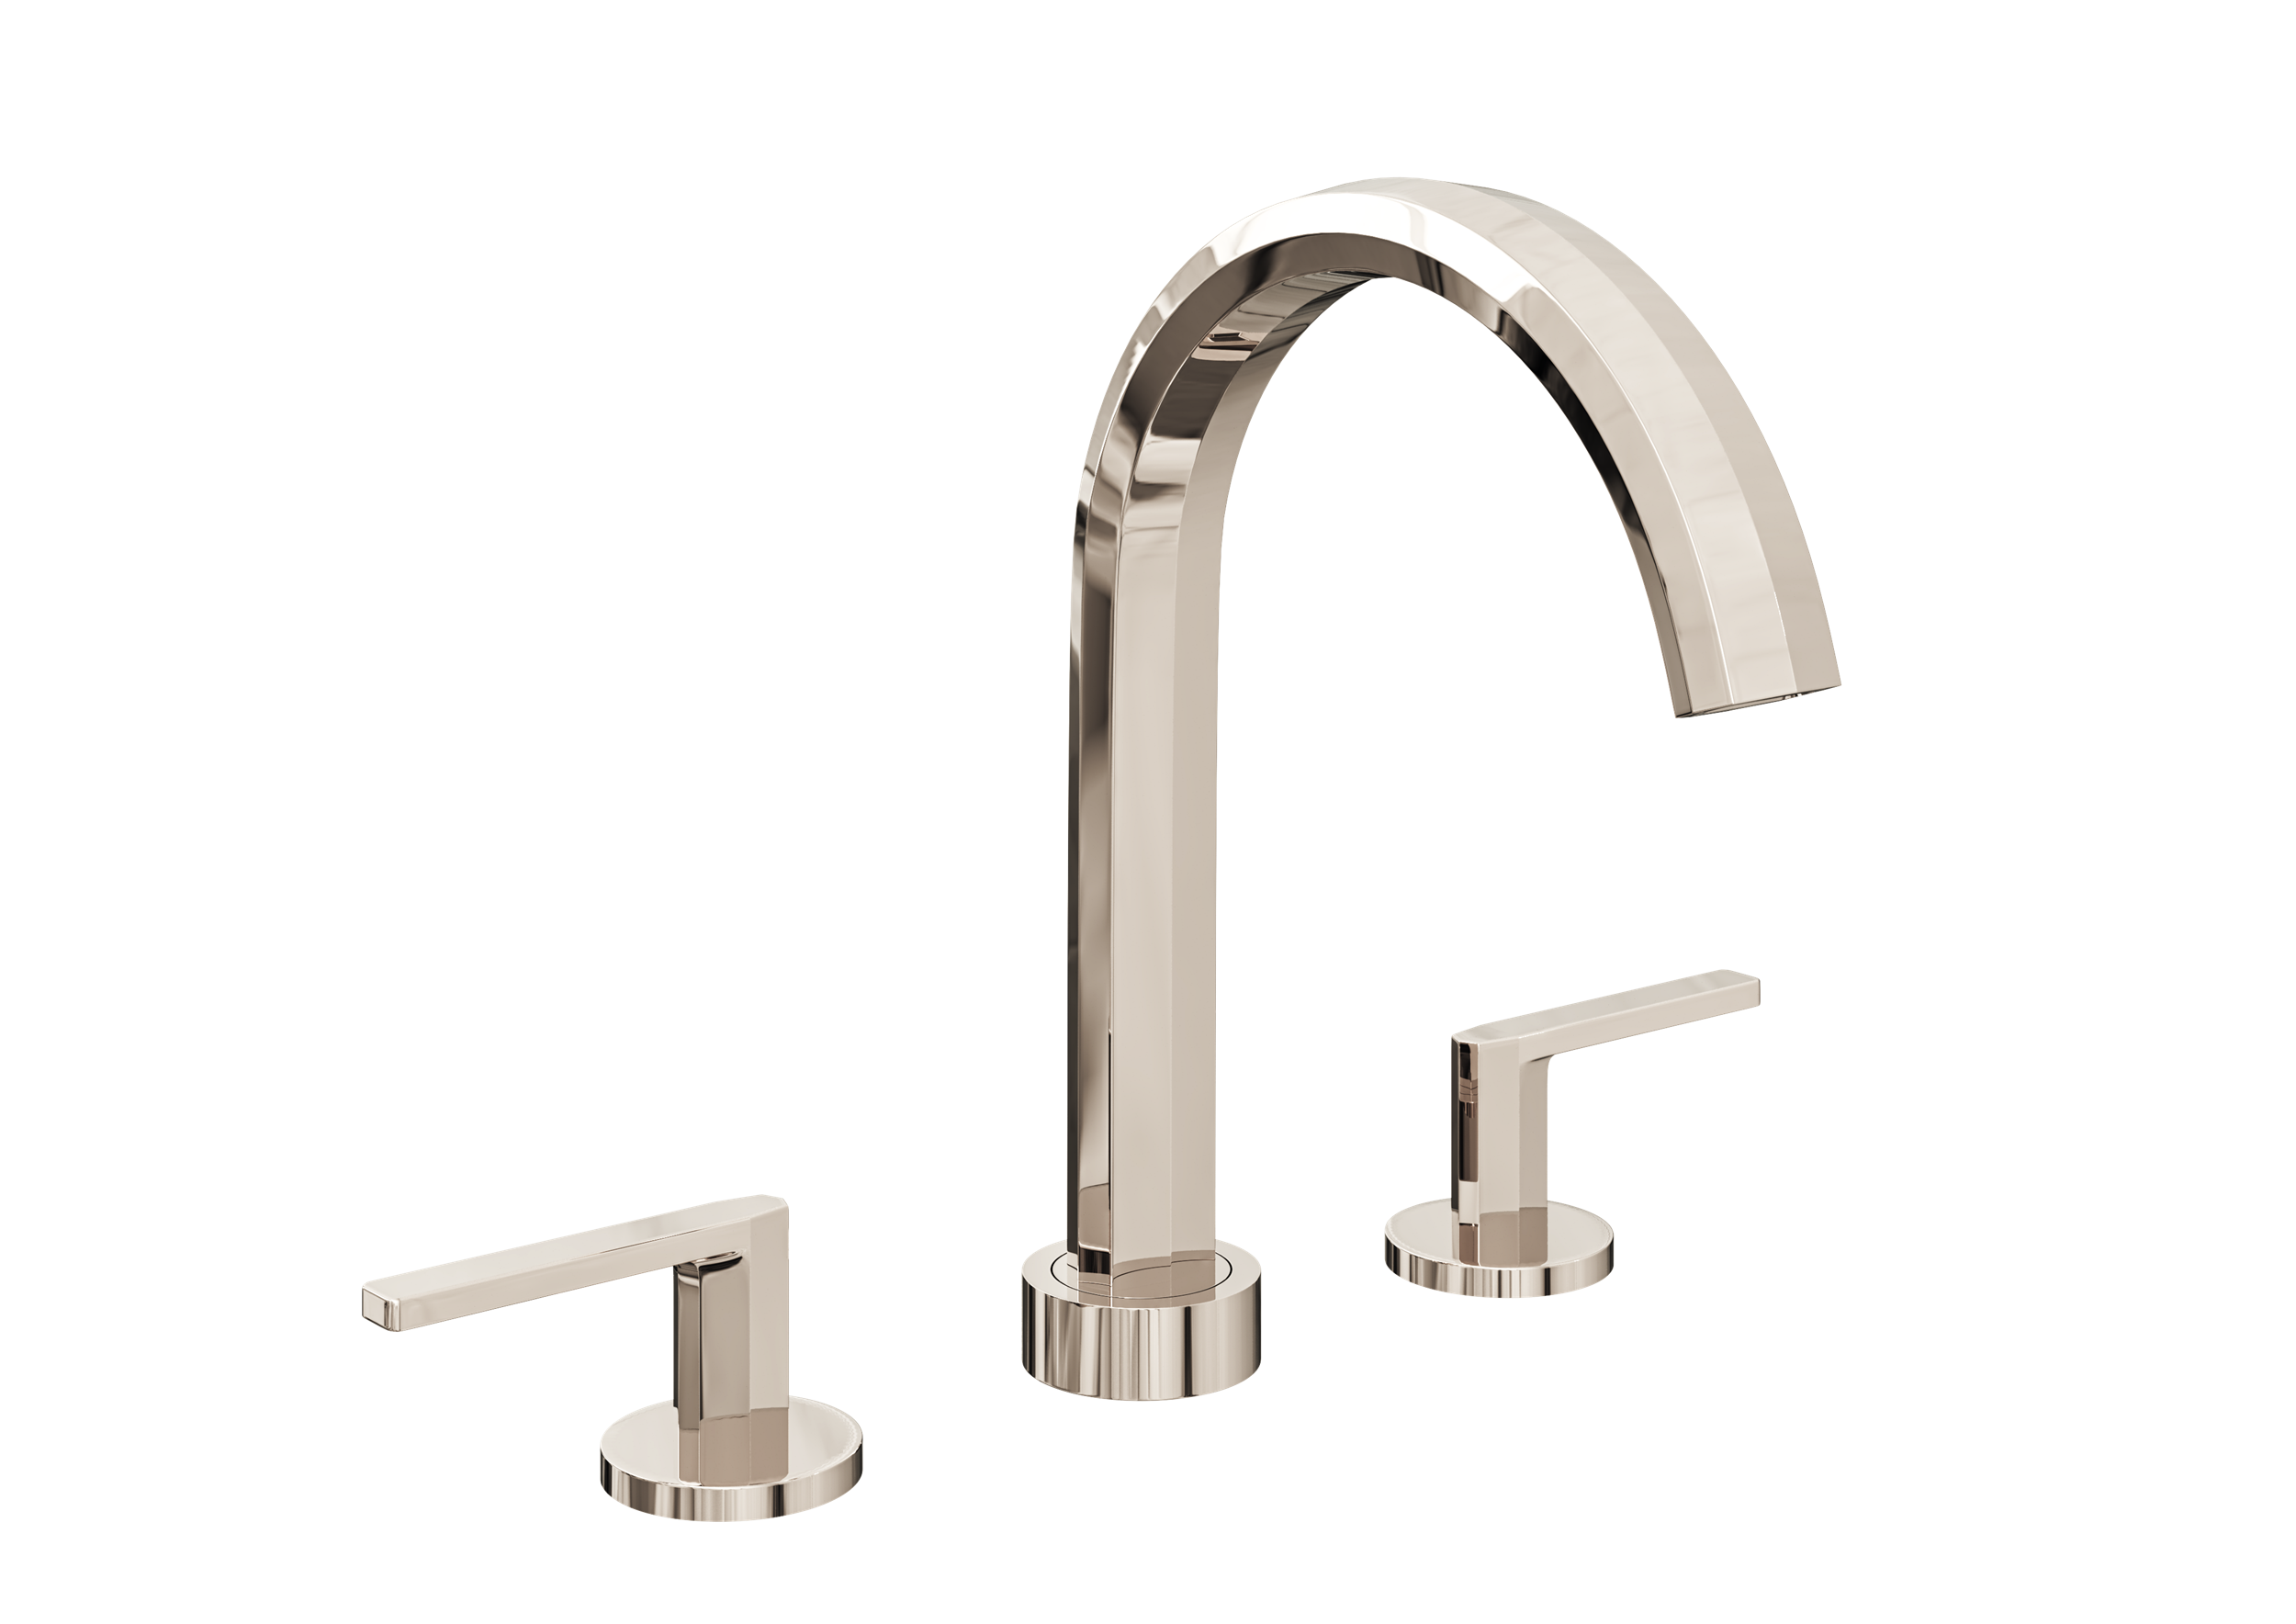 Heir Widespread Faucet in Polished Nickel